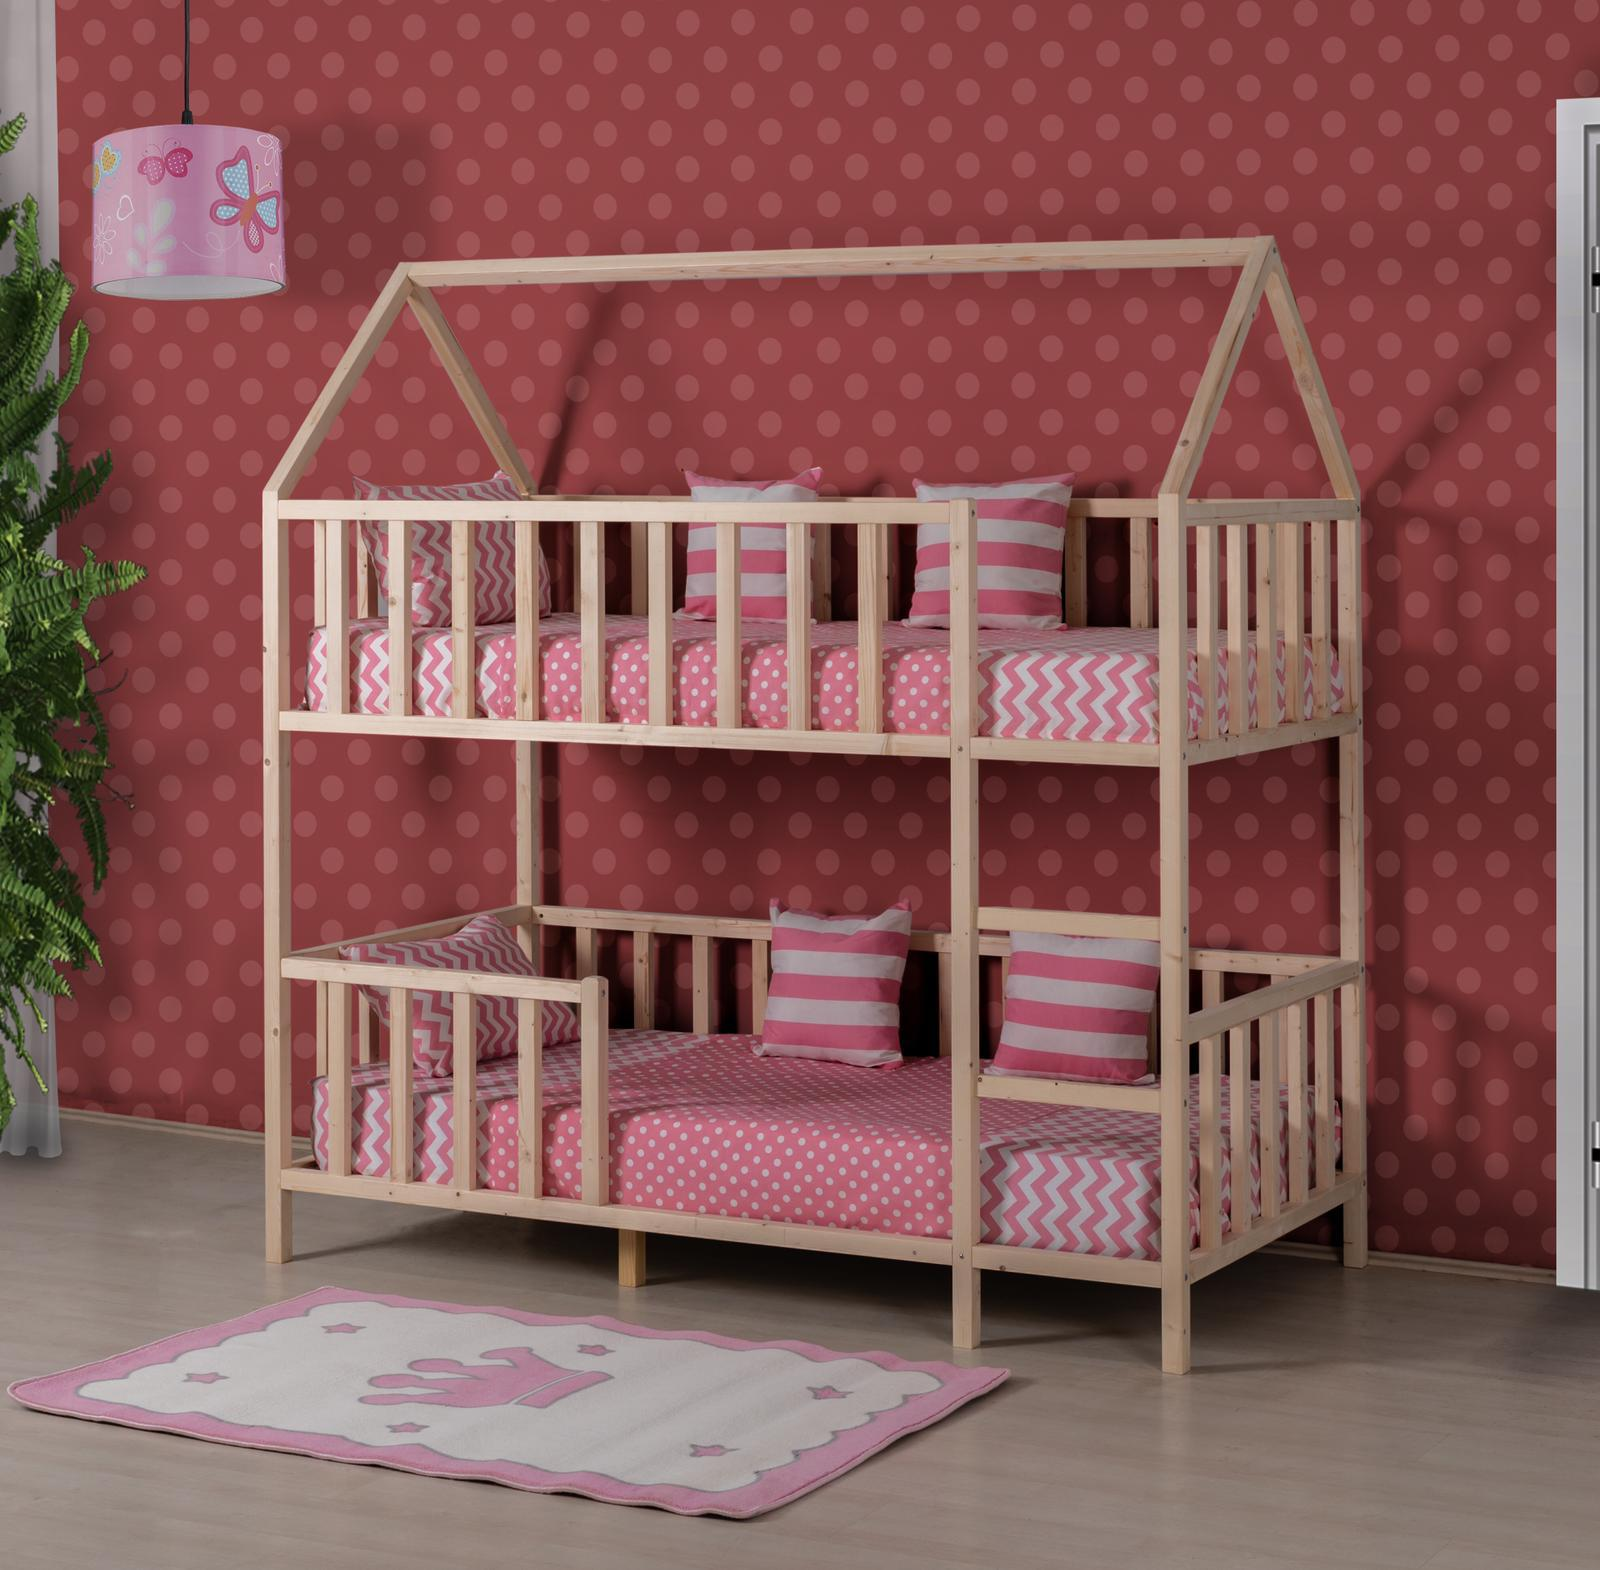 MONTESSORI BUNK BED